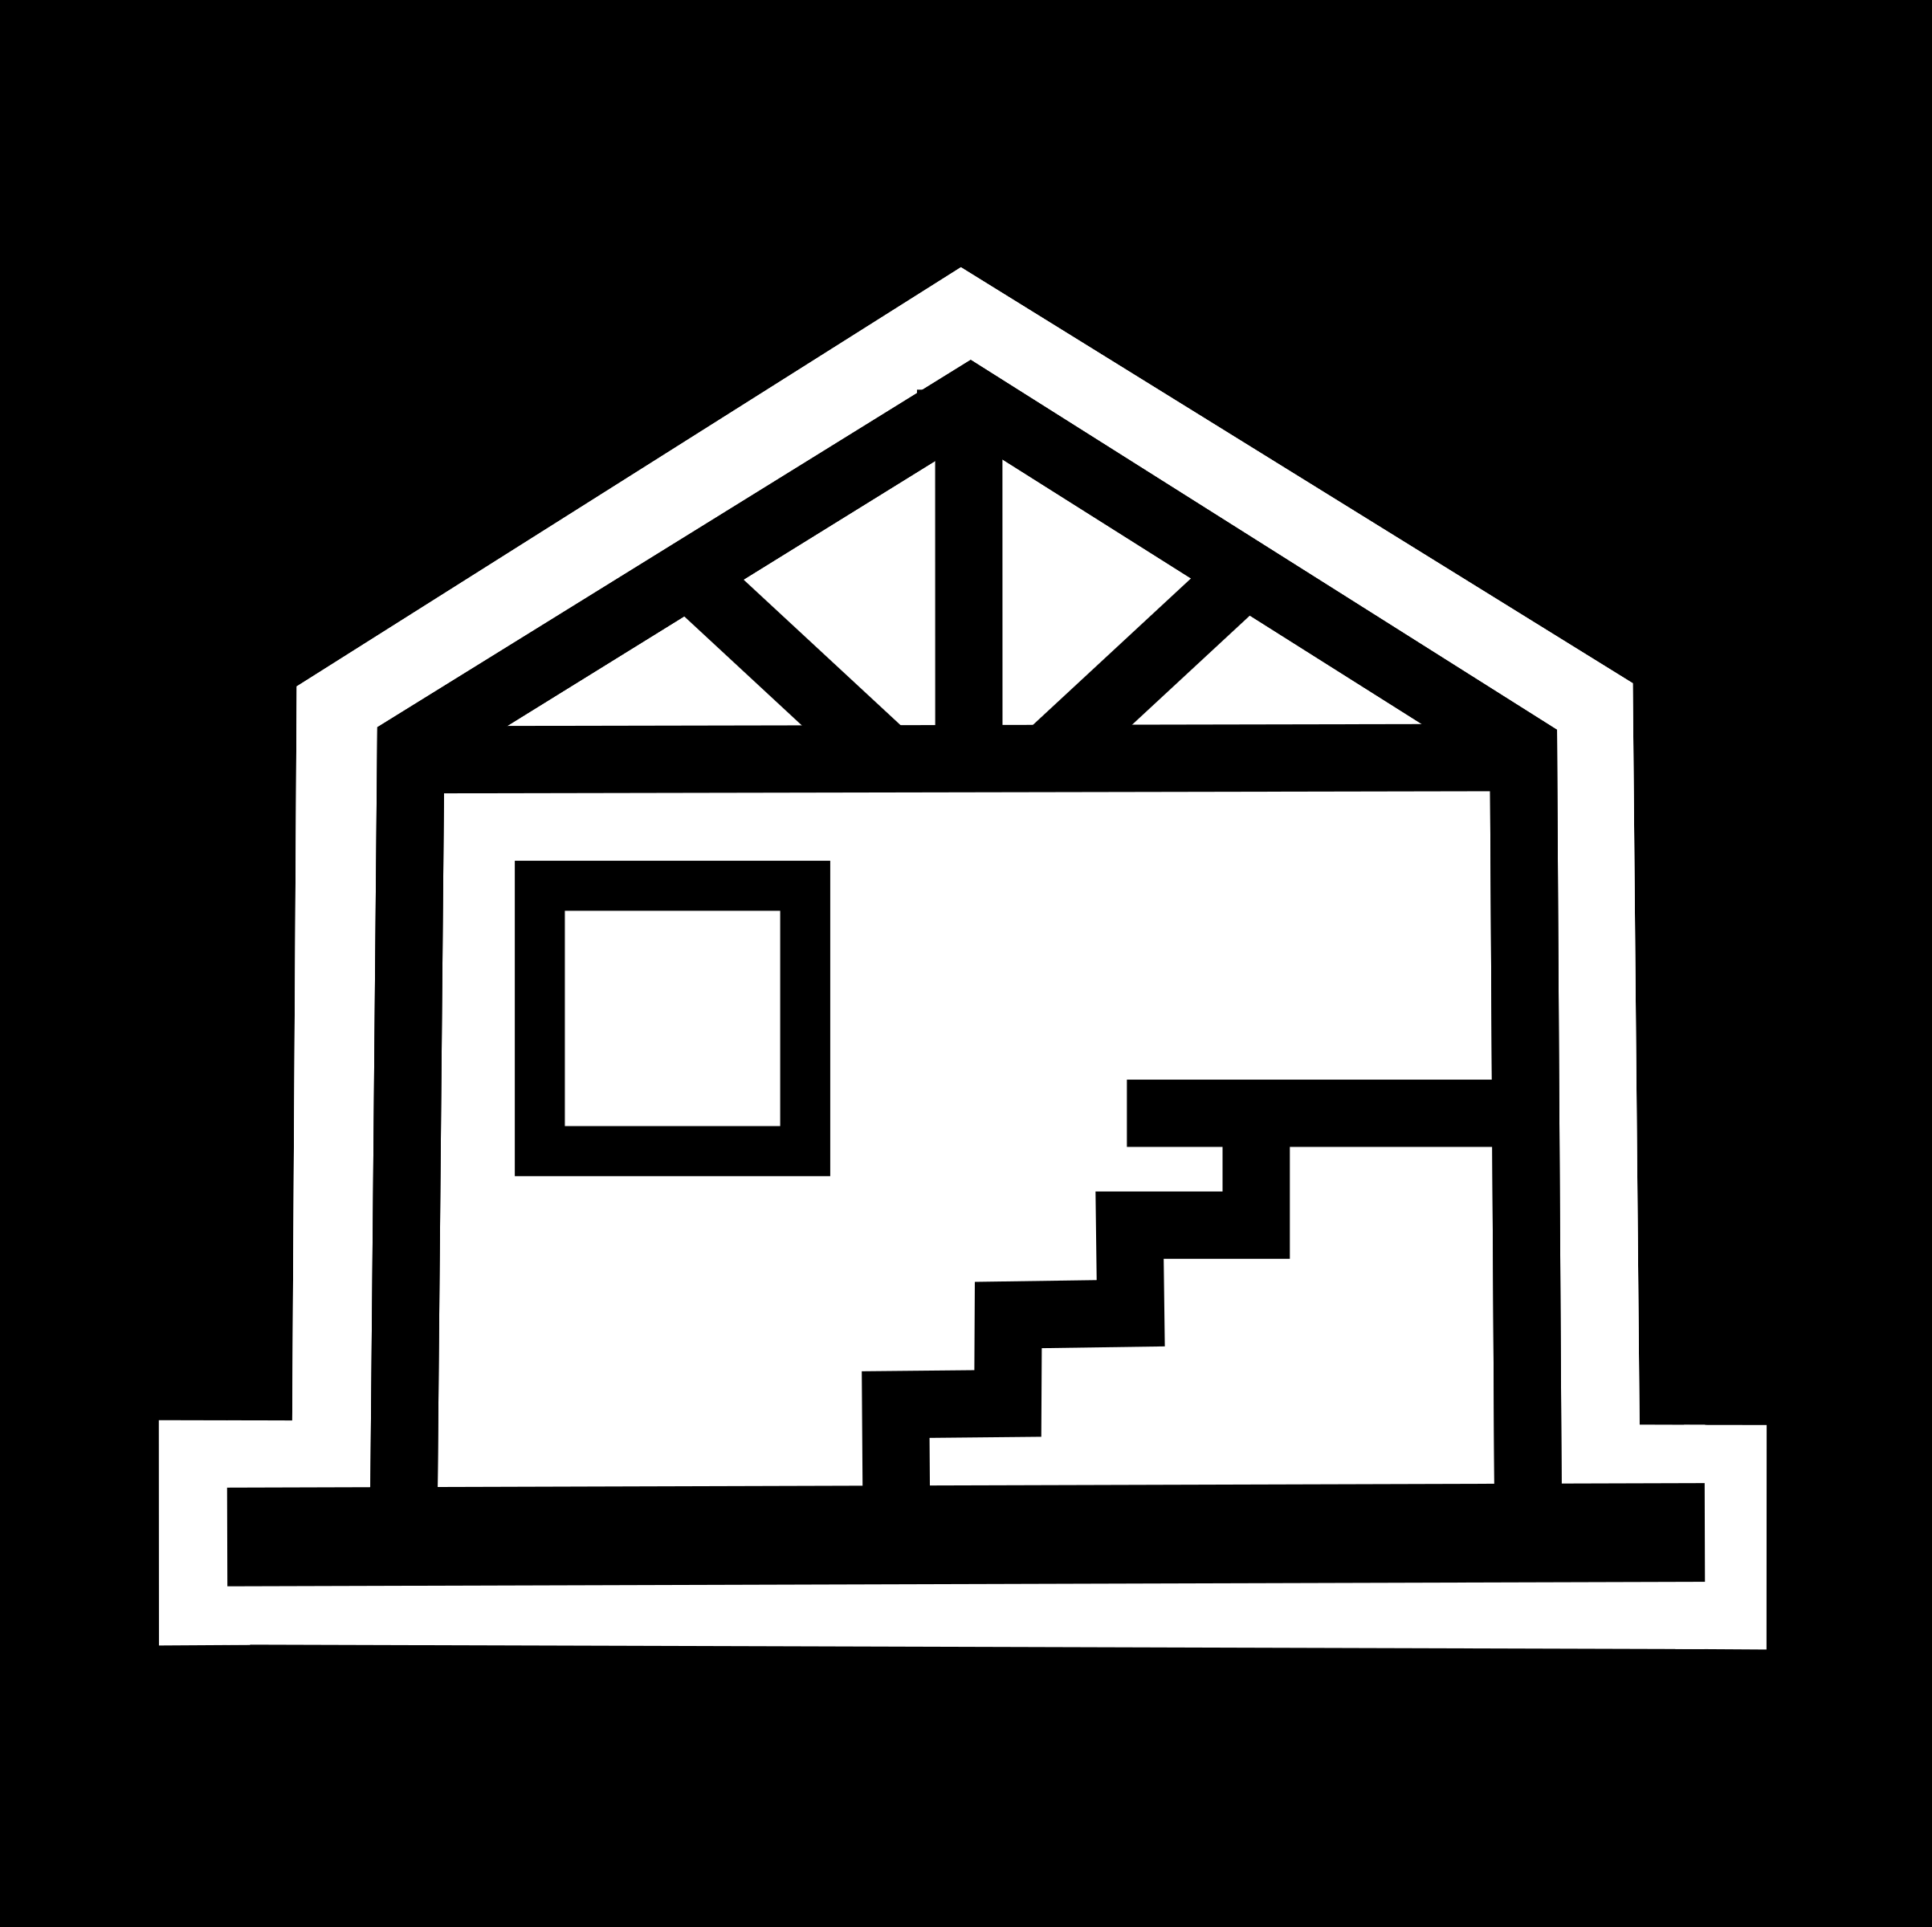 Building Icon by Bonzo